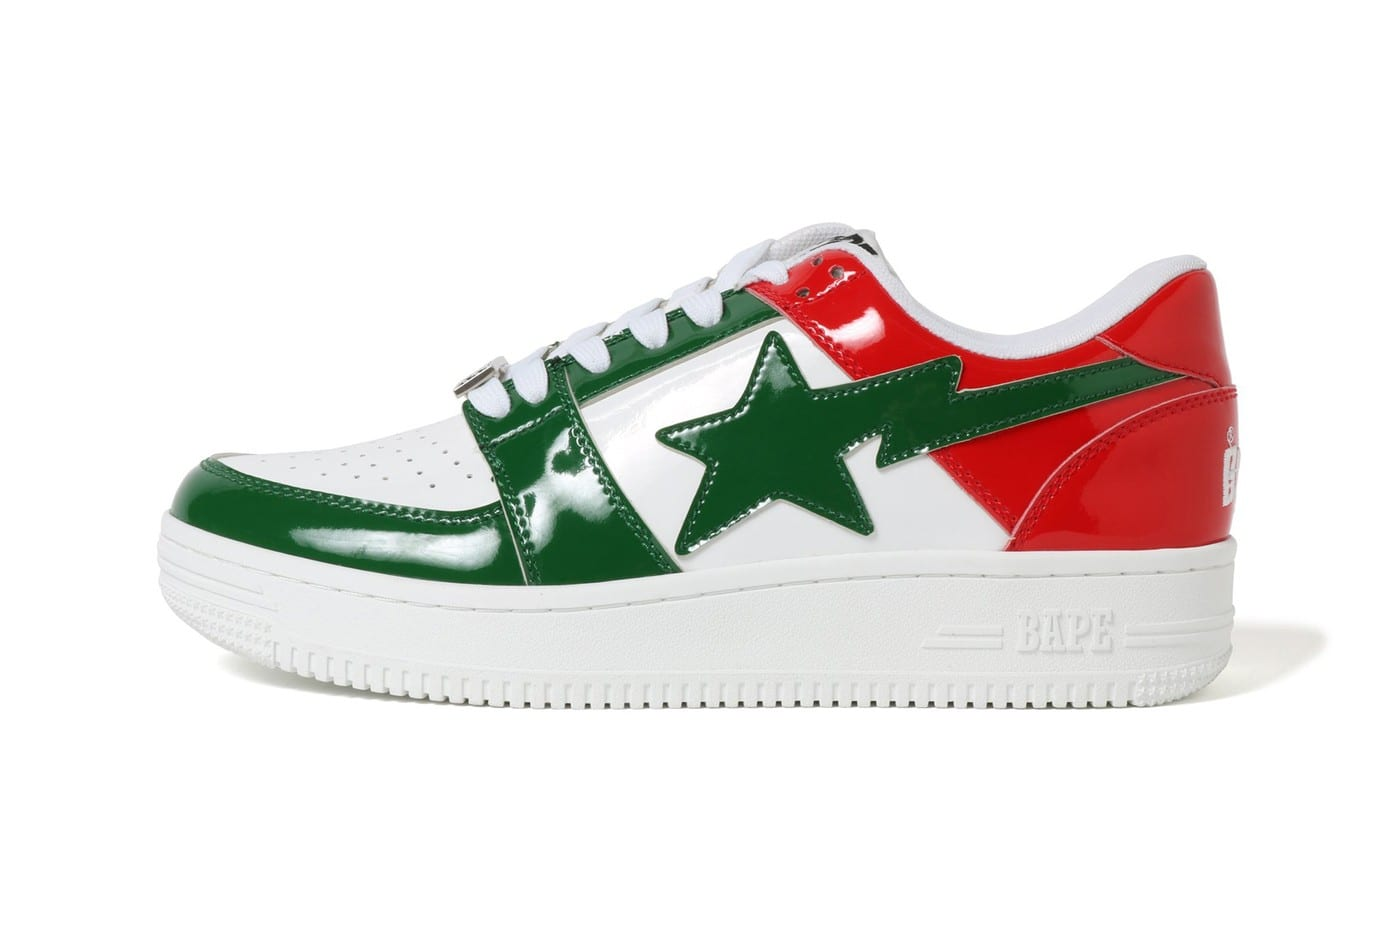 1155c4164681 Get the new SS19 BAPESTA colorways starting this Saturday (April 6) at  official A Bathing Ape retailers and online. More pics below